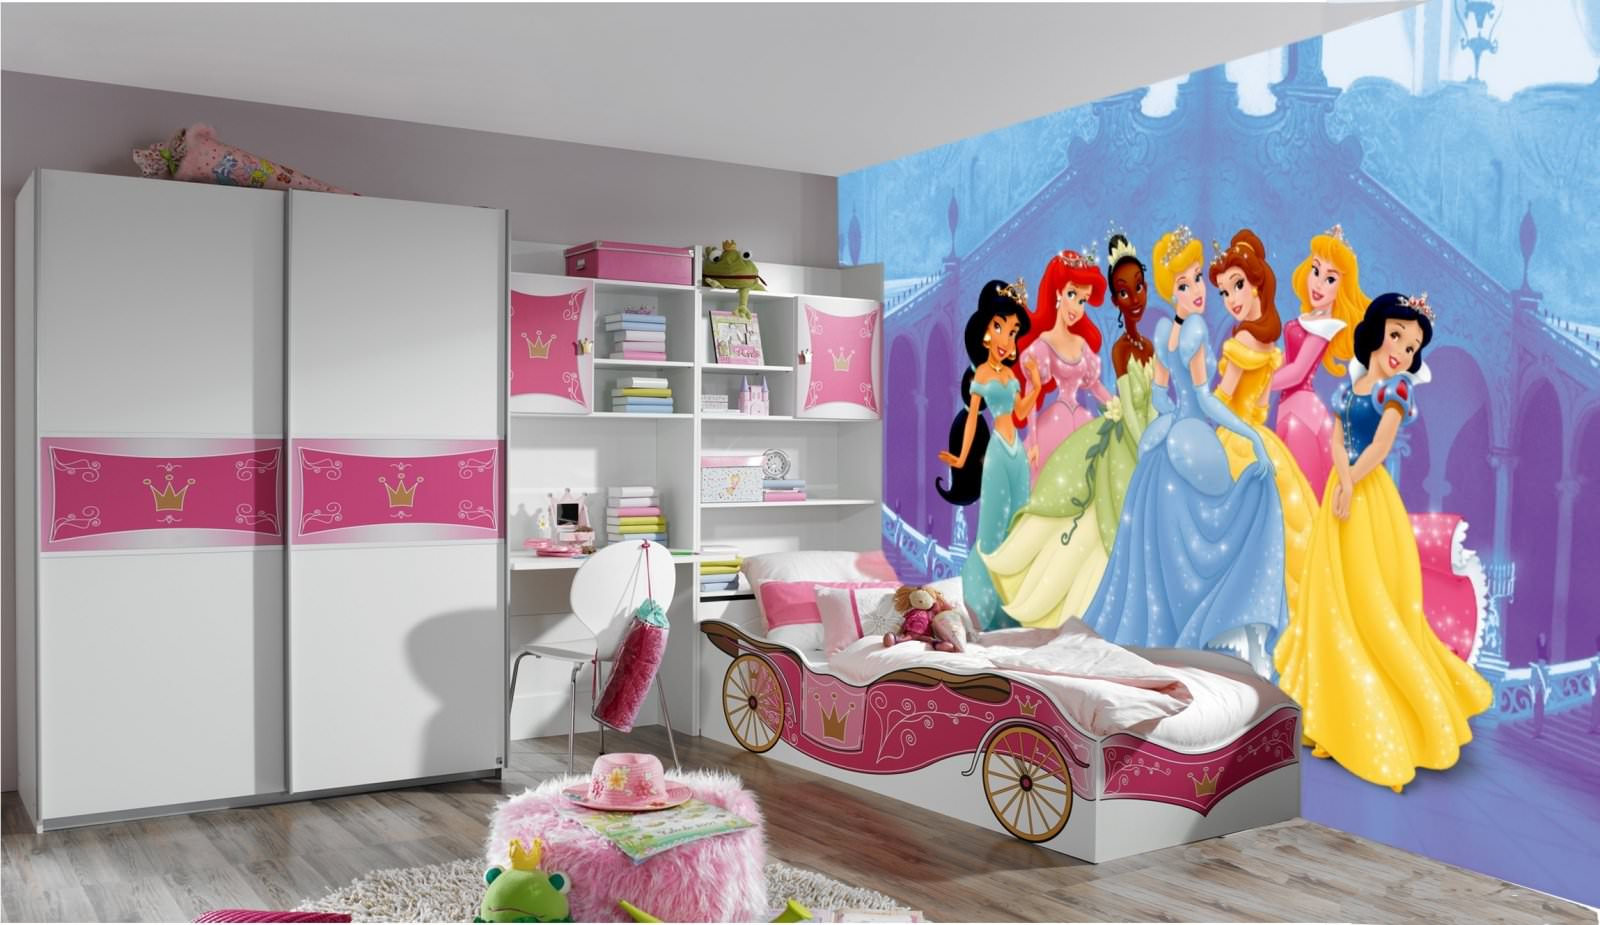 D co chambre disney princesse exemples d 39 am nagements for Chambre princesse disney